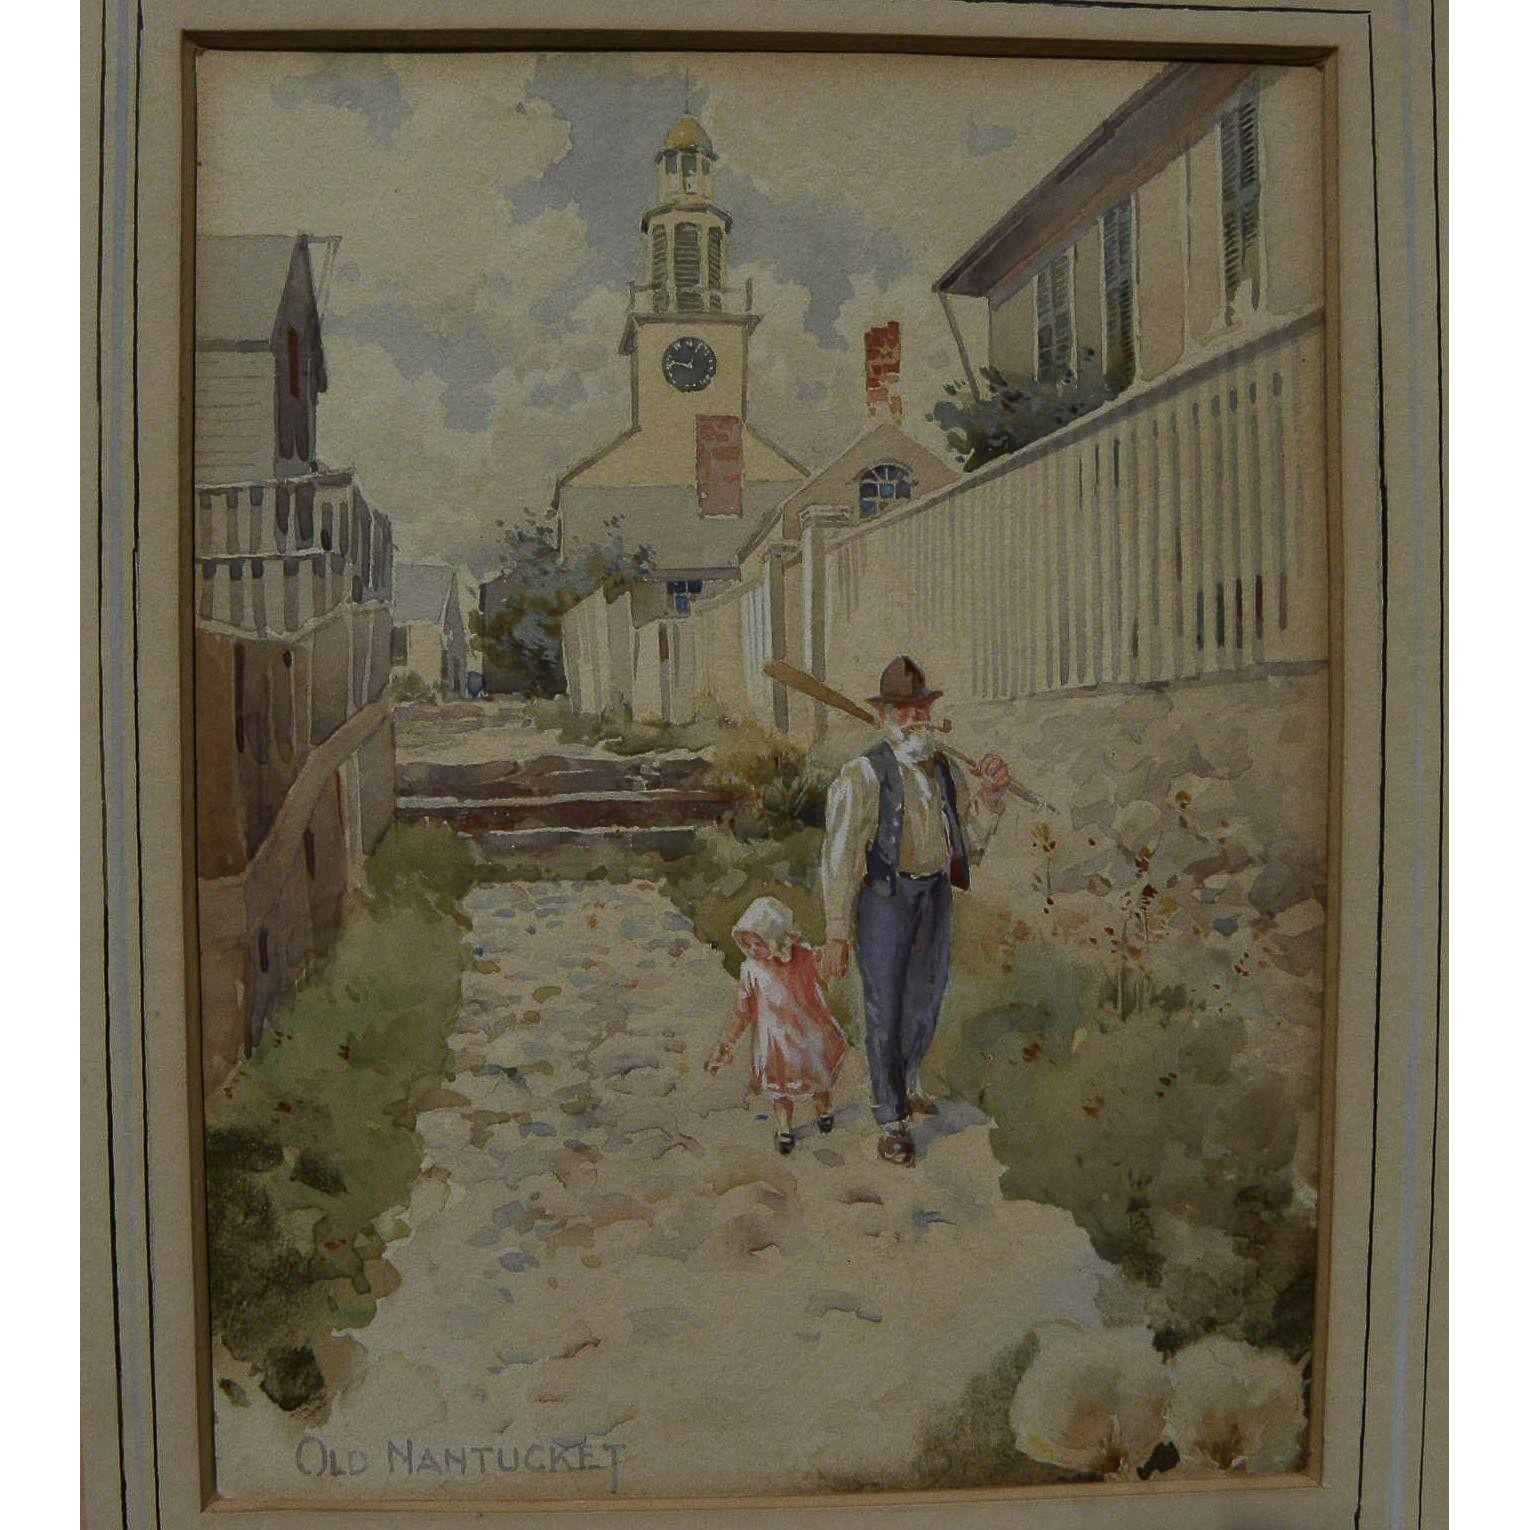 Nantucket Massachusetts fine old 19th century street scene watercolor painting artist unknown